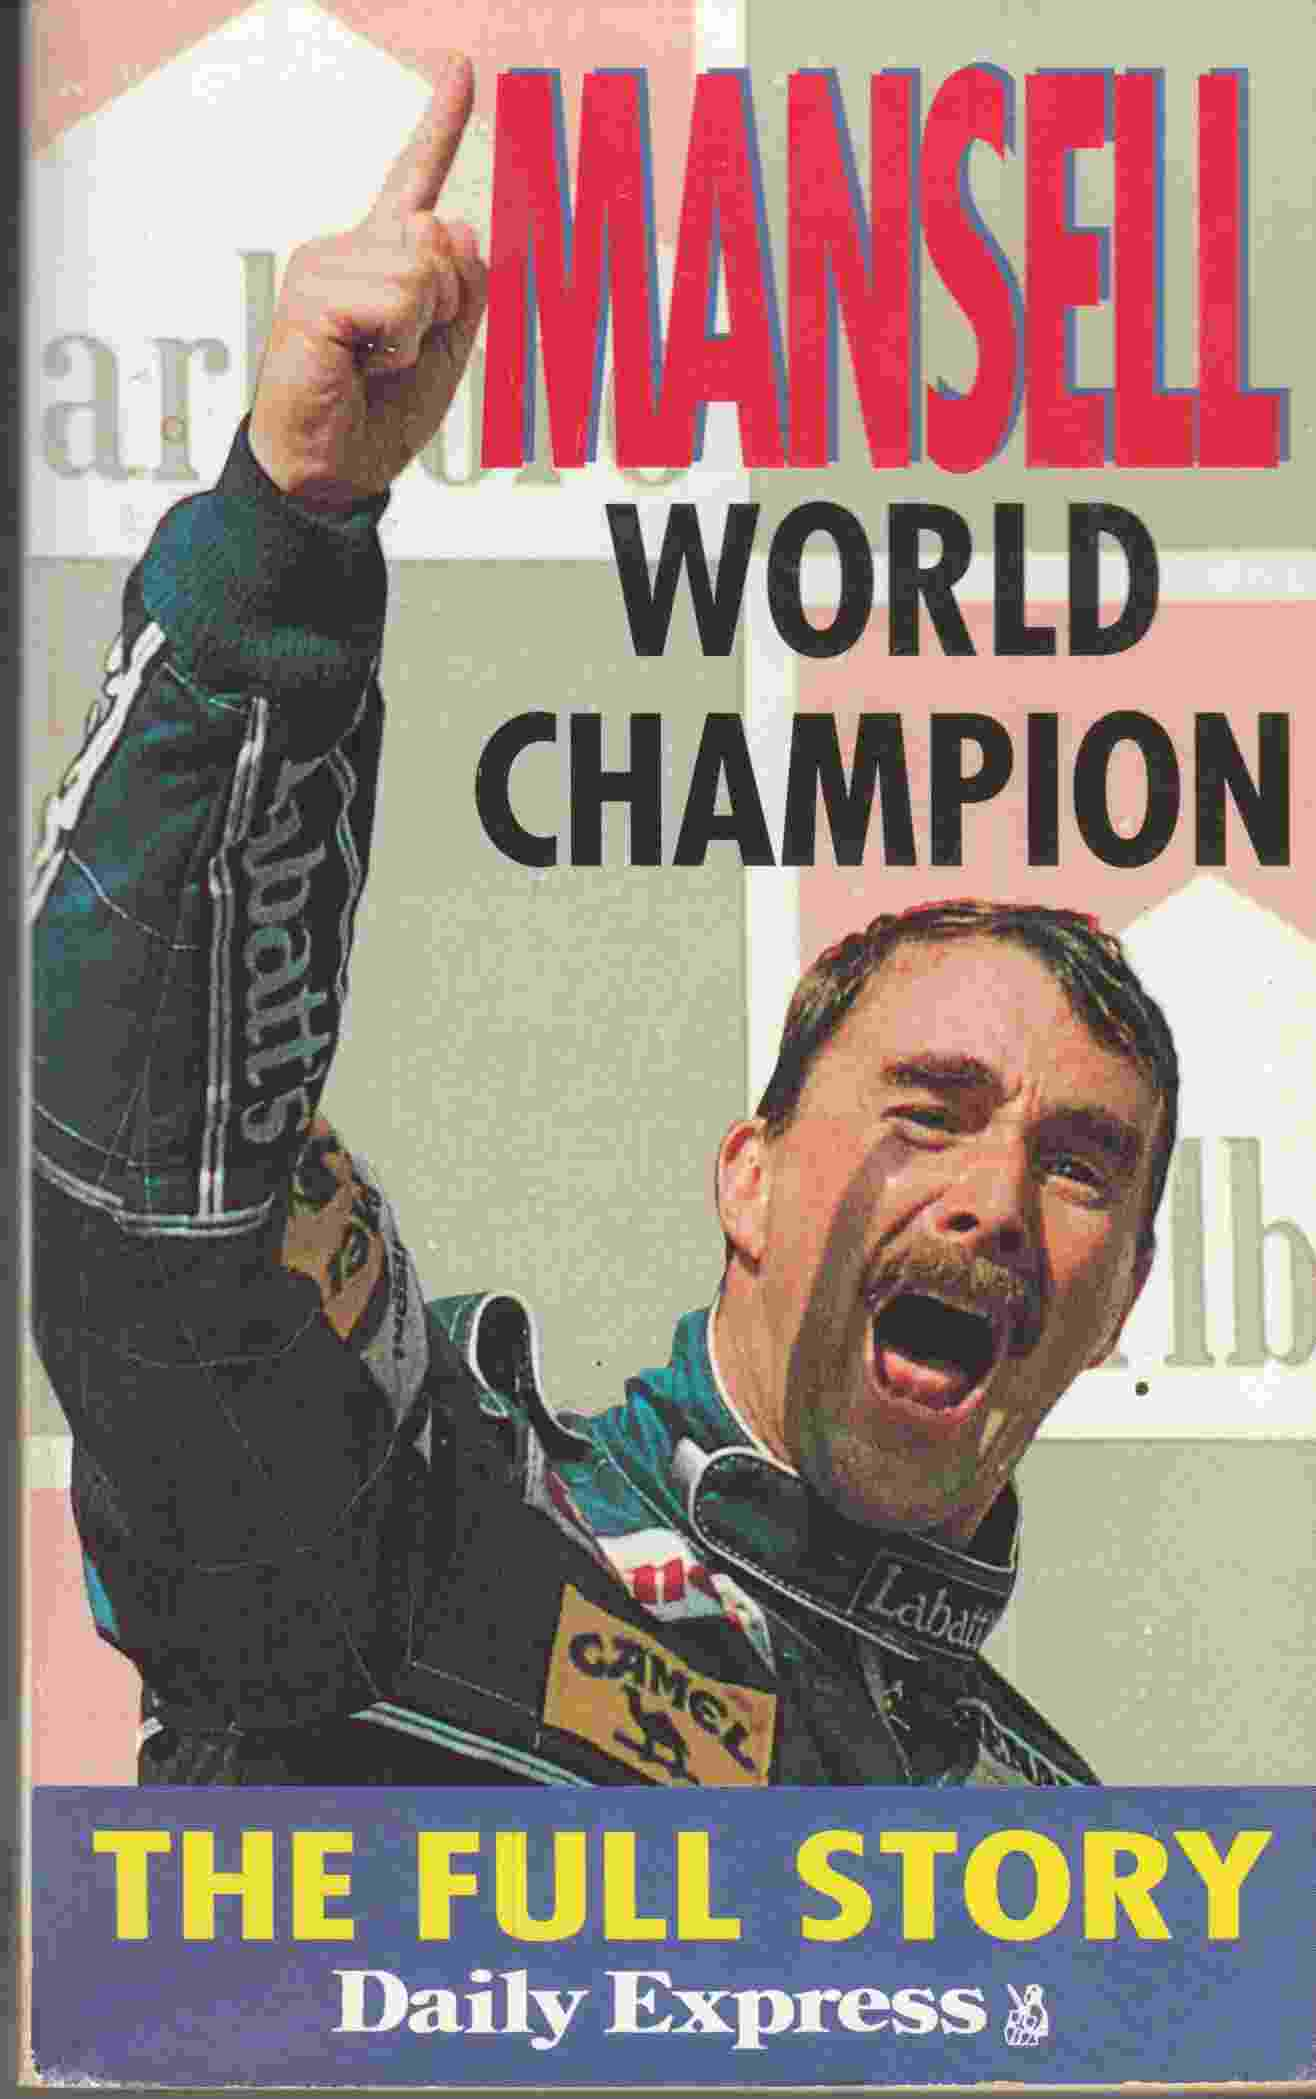 Image for Nigell Mansell World Champion The Full Story